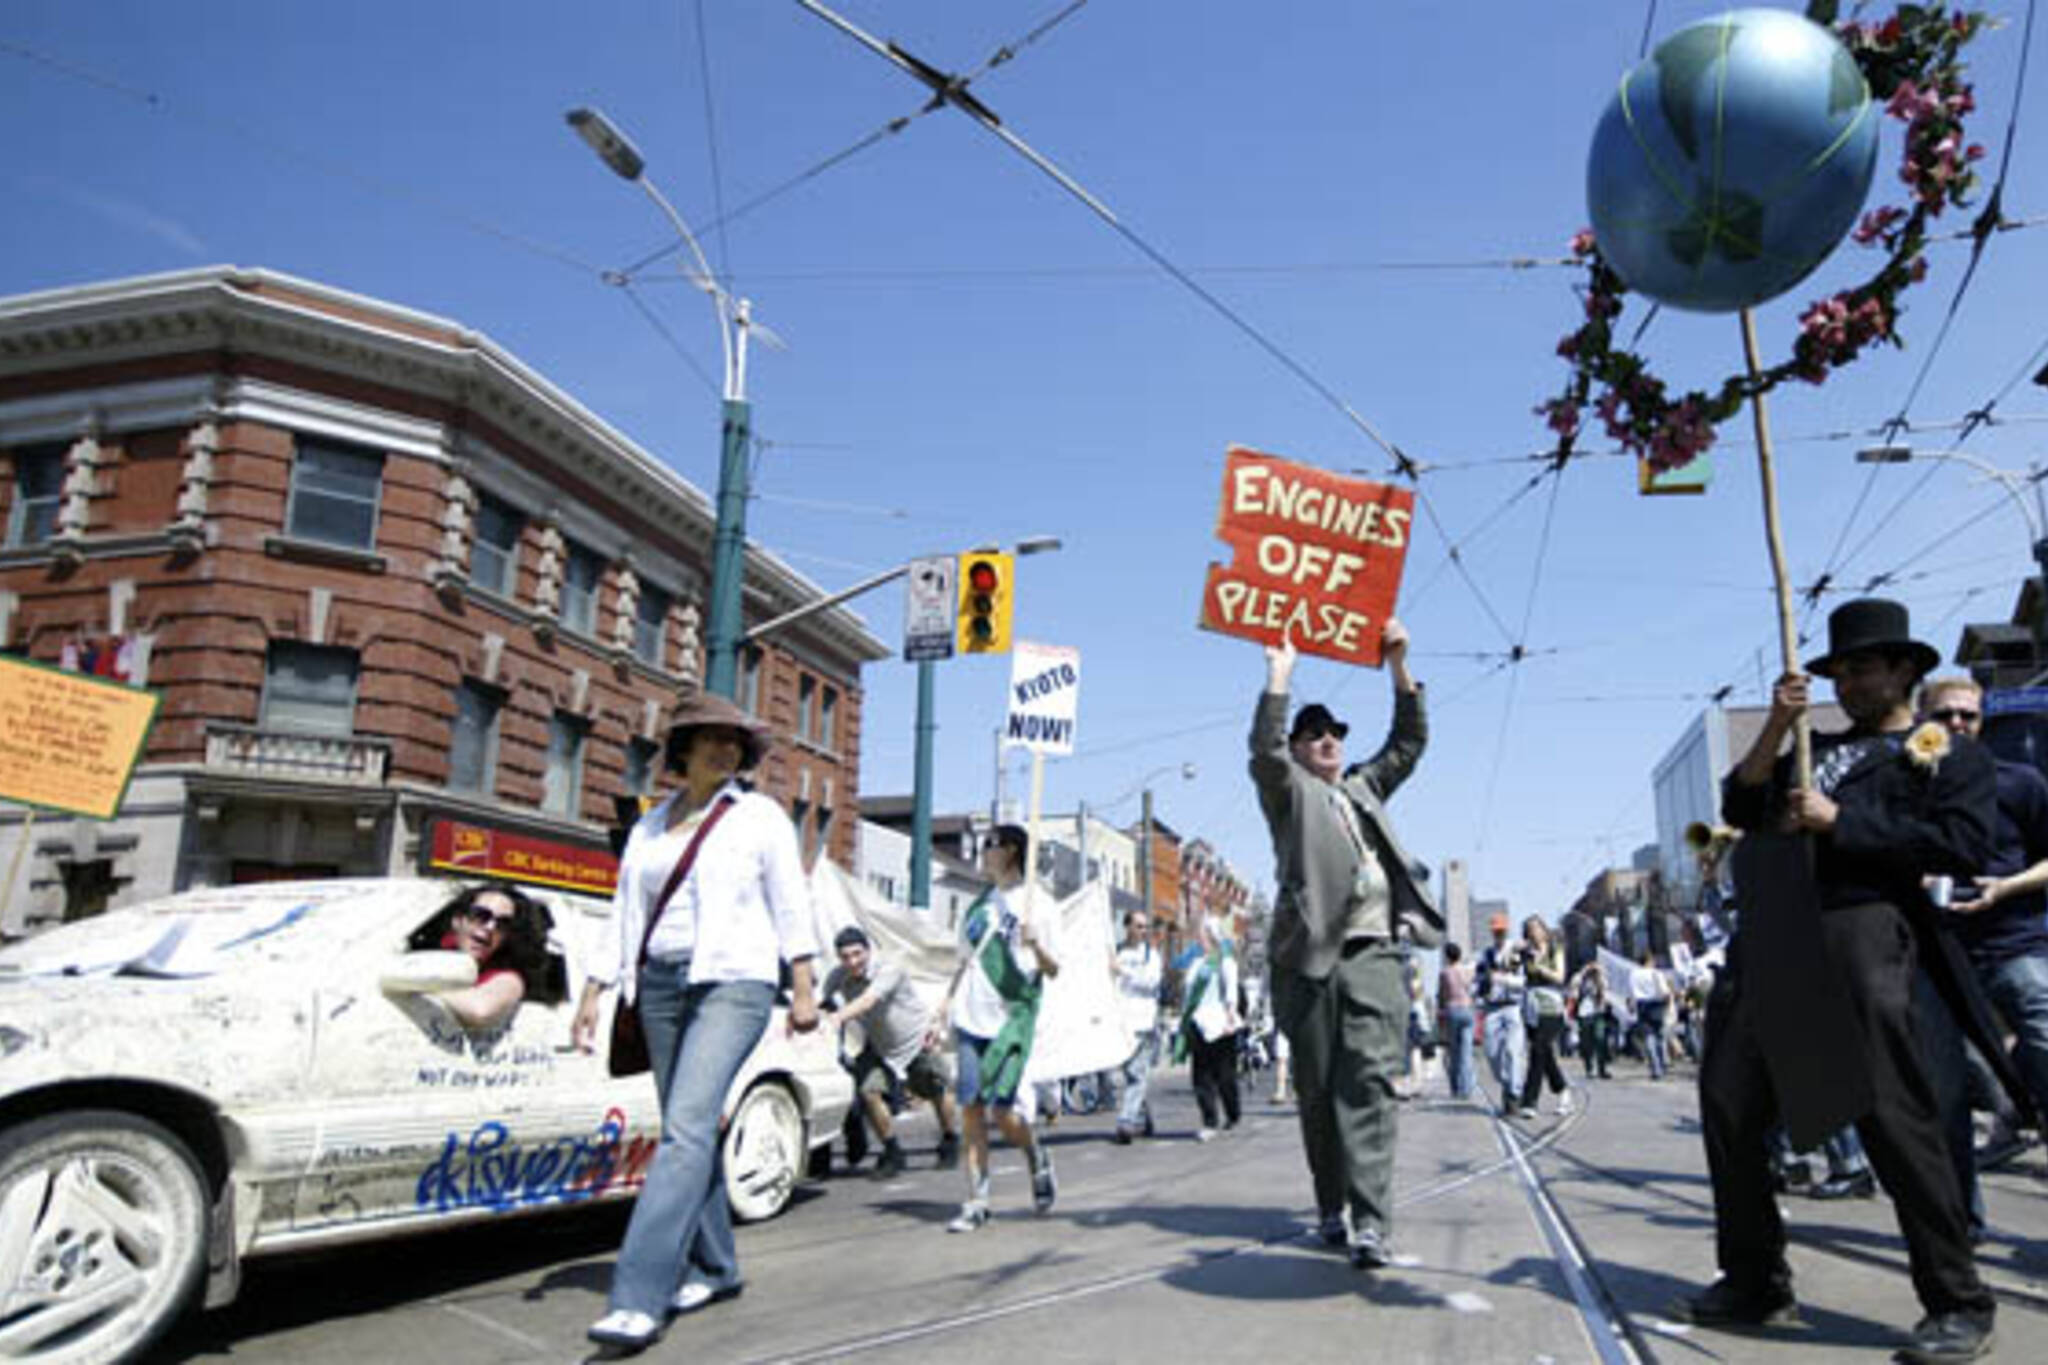 Streets Are For People! celebrate Earth Day in the Queen St. W. and Spadina intersection in Toronto